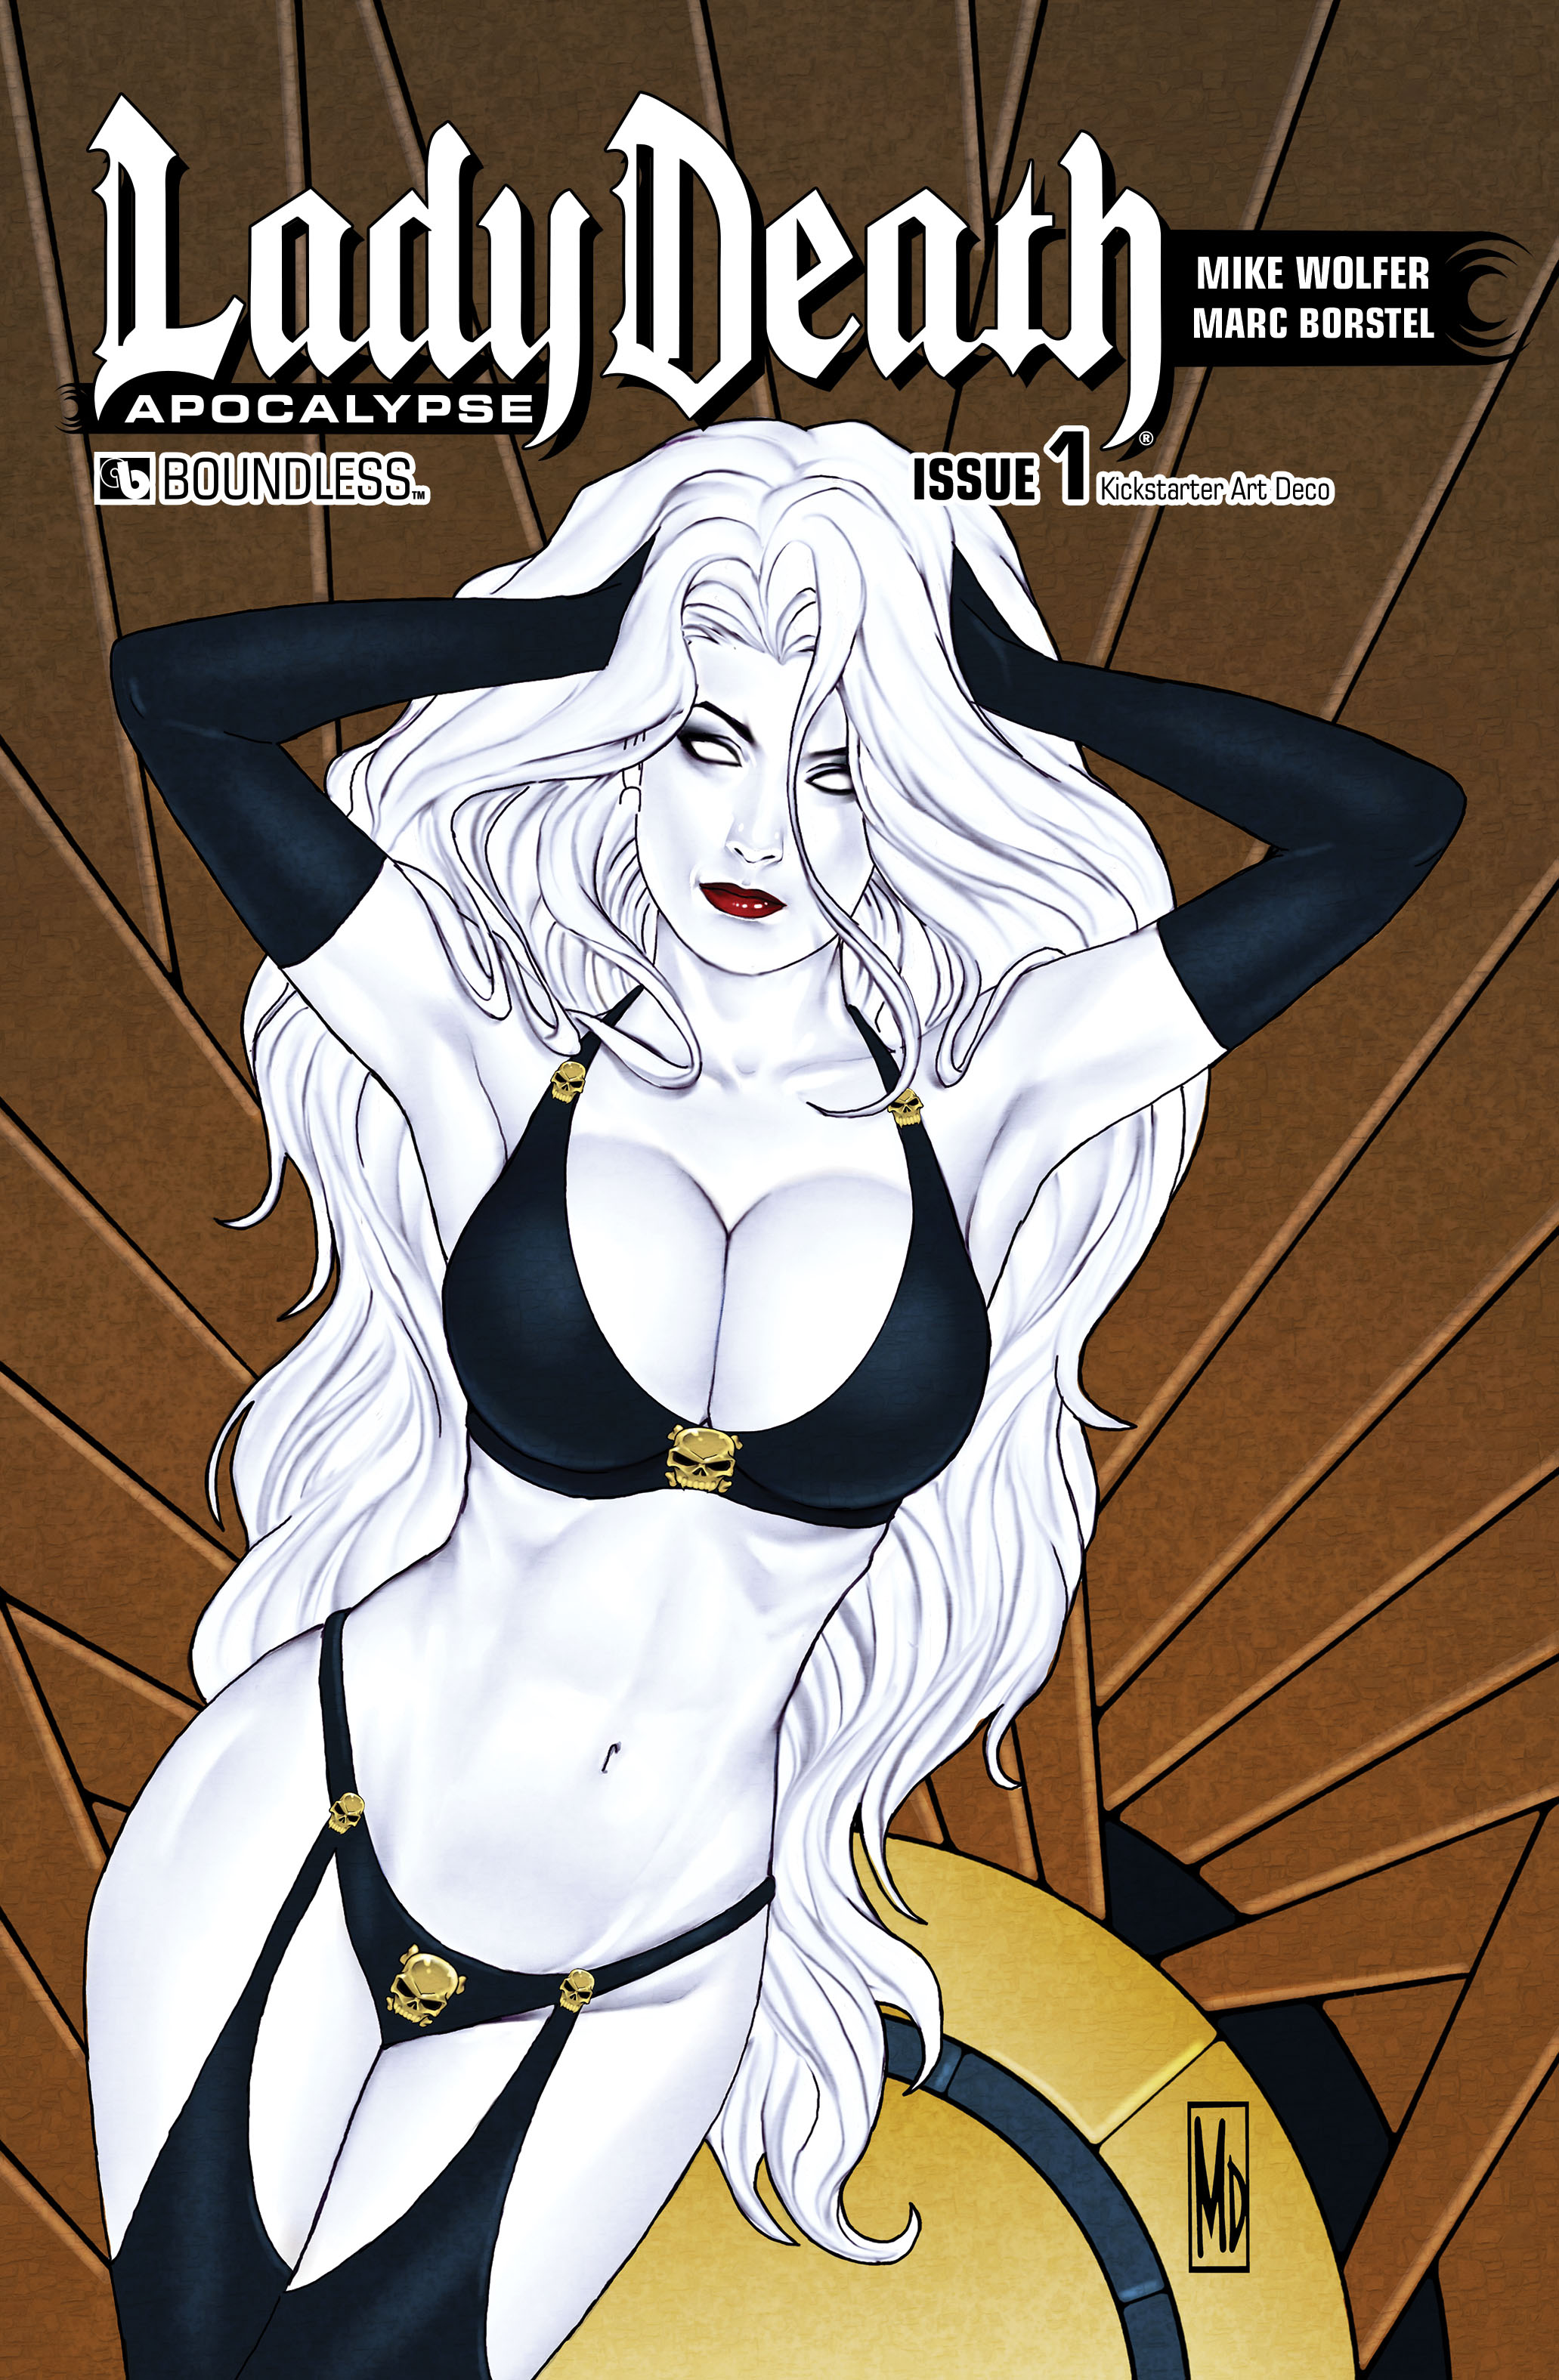 LADY DEATH APOCALYPSE #1 KICKSTARTER ART DECO (MR)